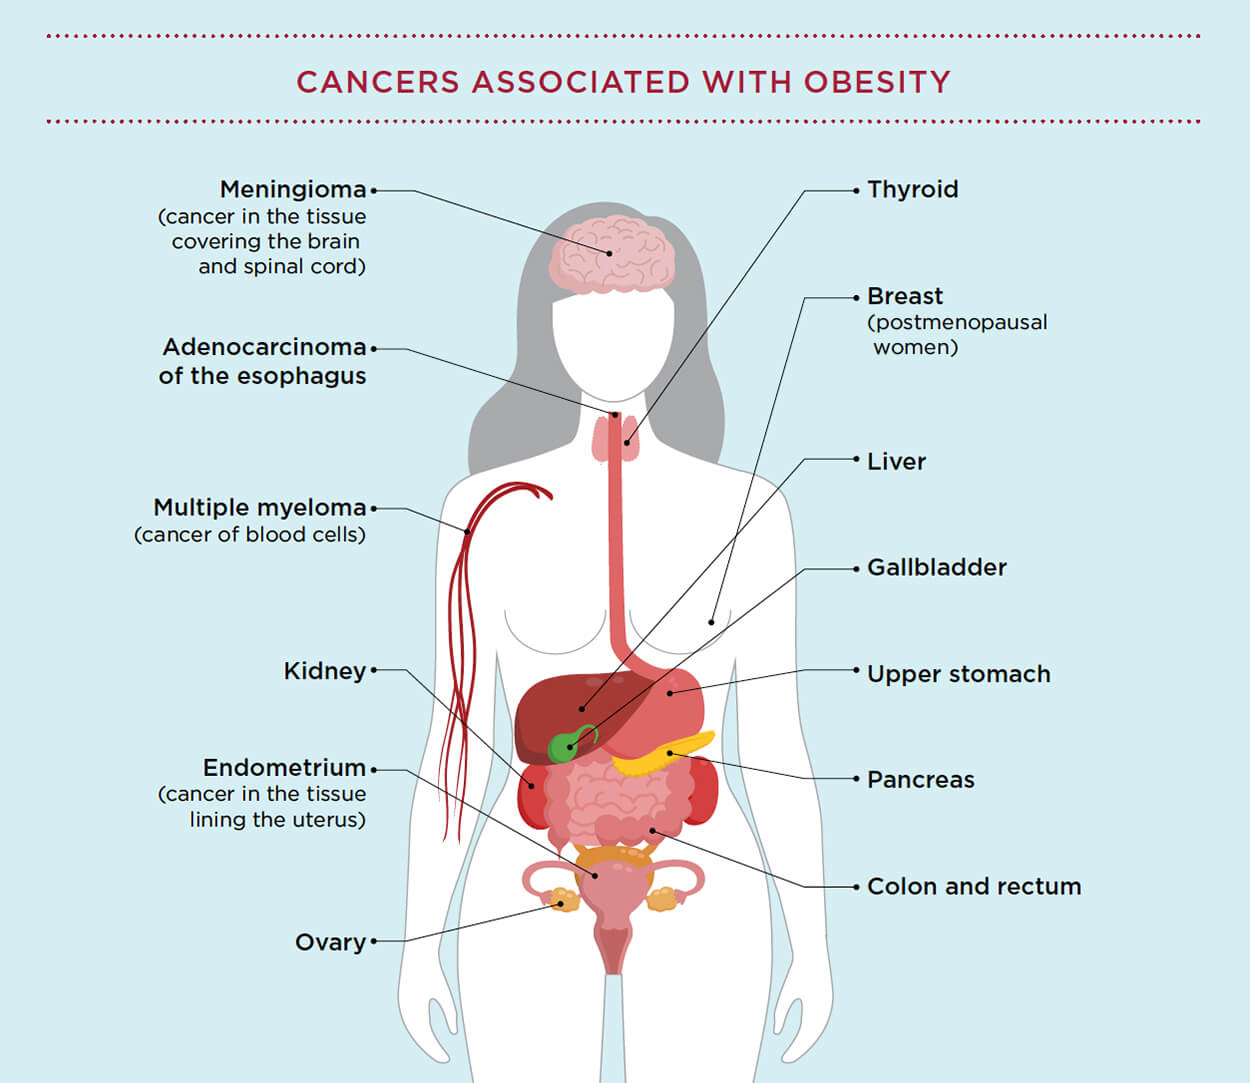 The Centers for Disease Control and Prevention identified 13 cancers associated with obesity.